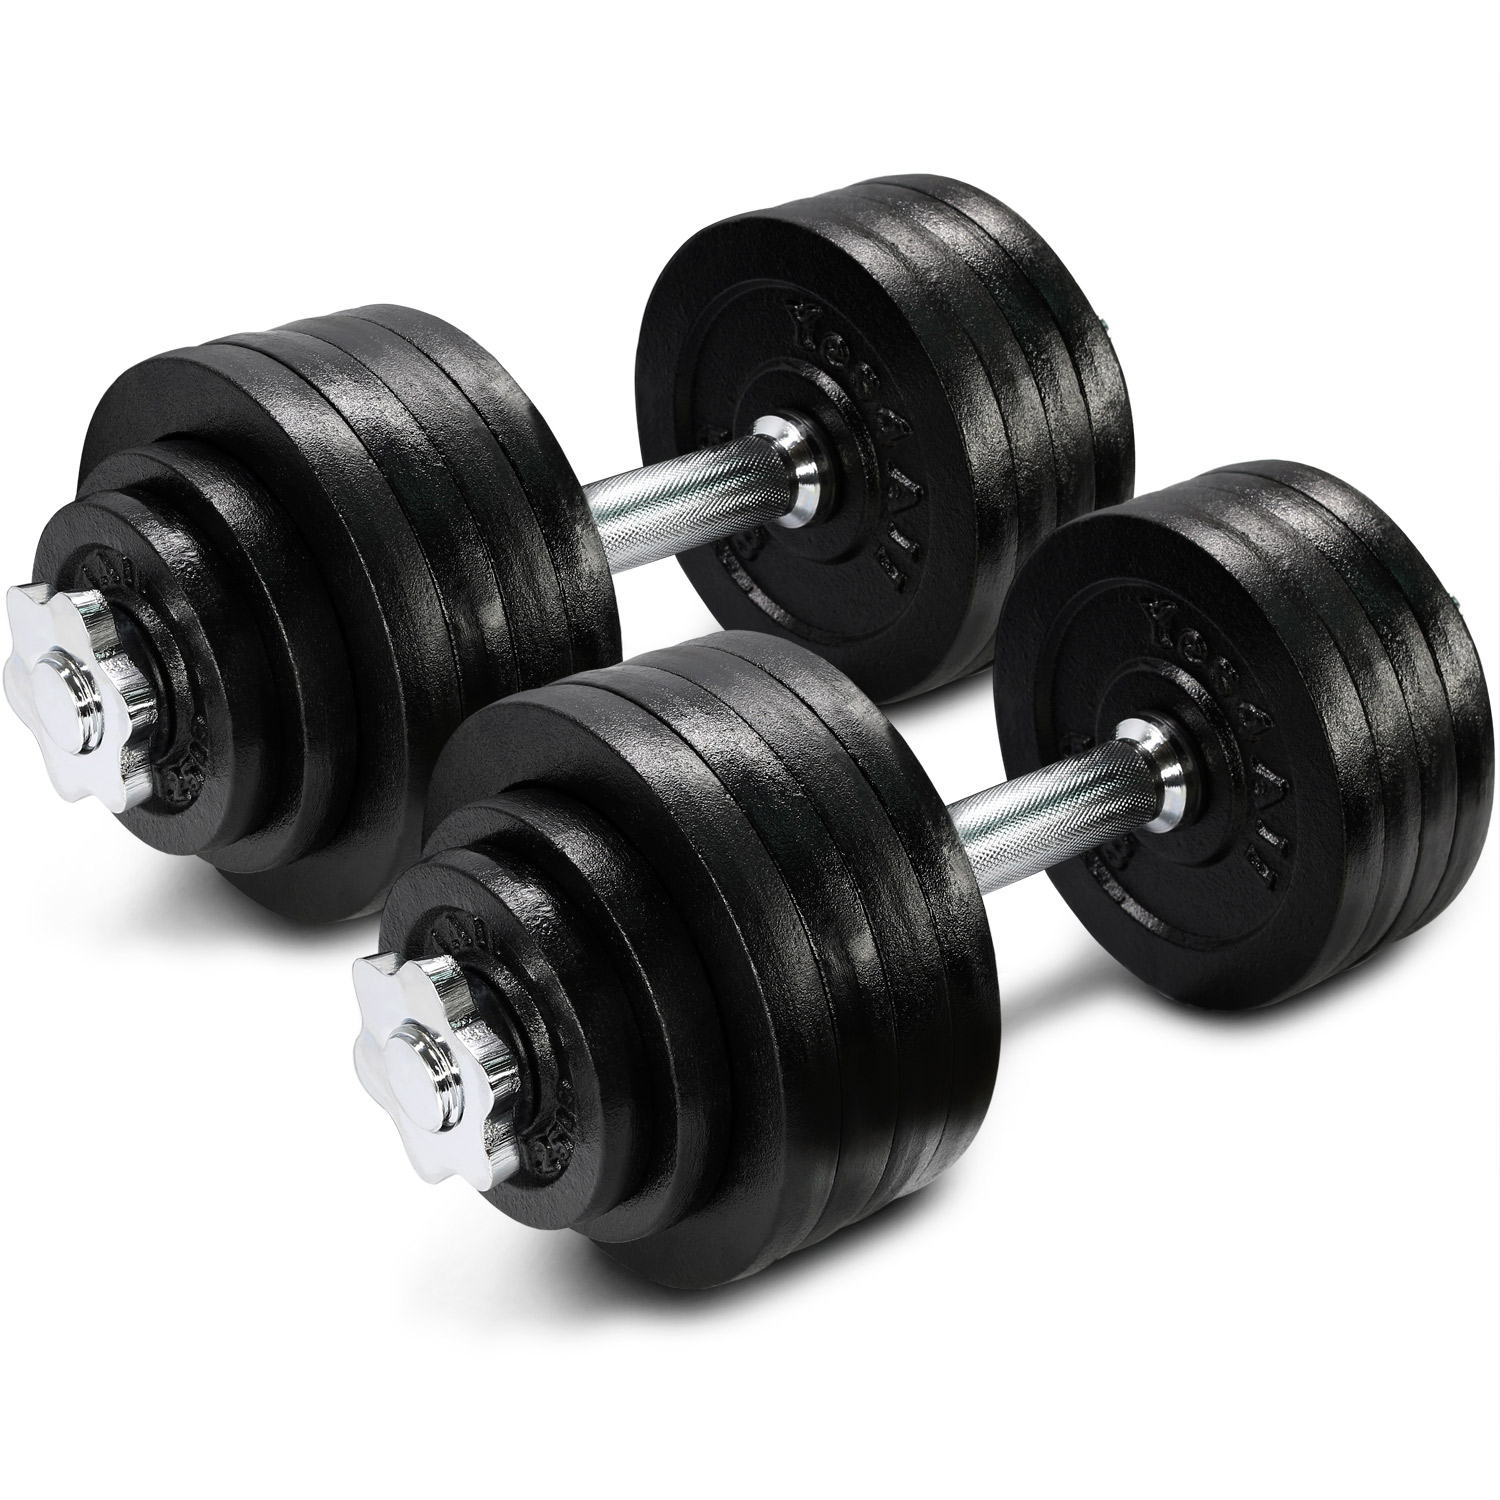 Yes4All Cast Iron Adjustable Dumbbell 105lbs